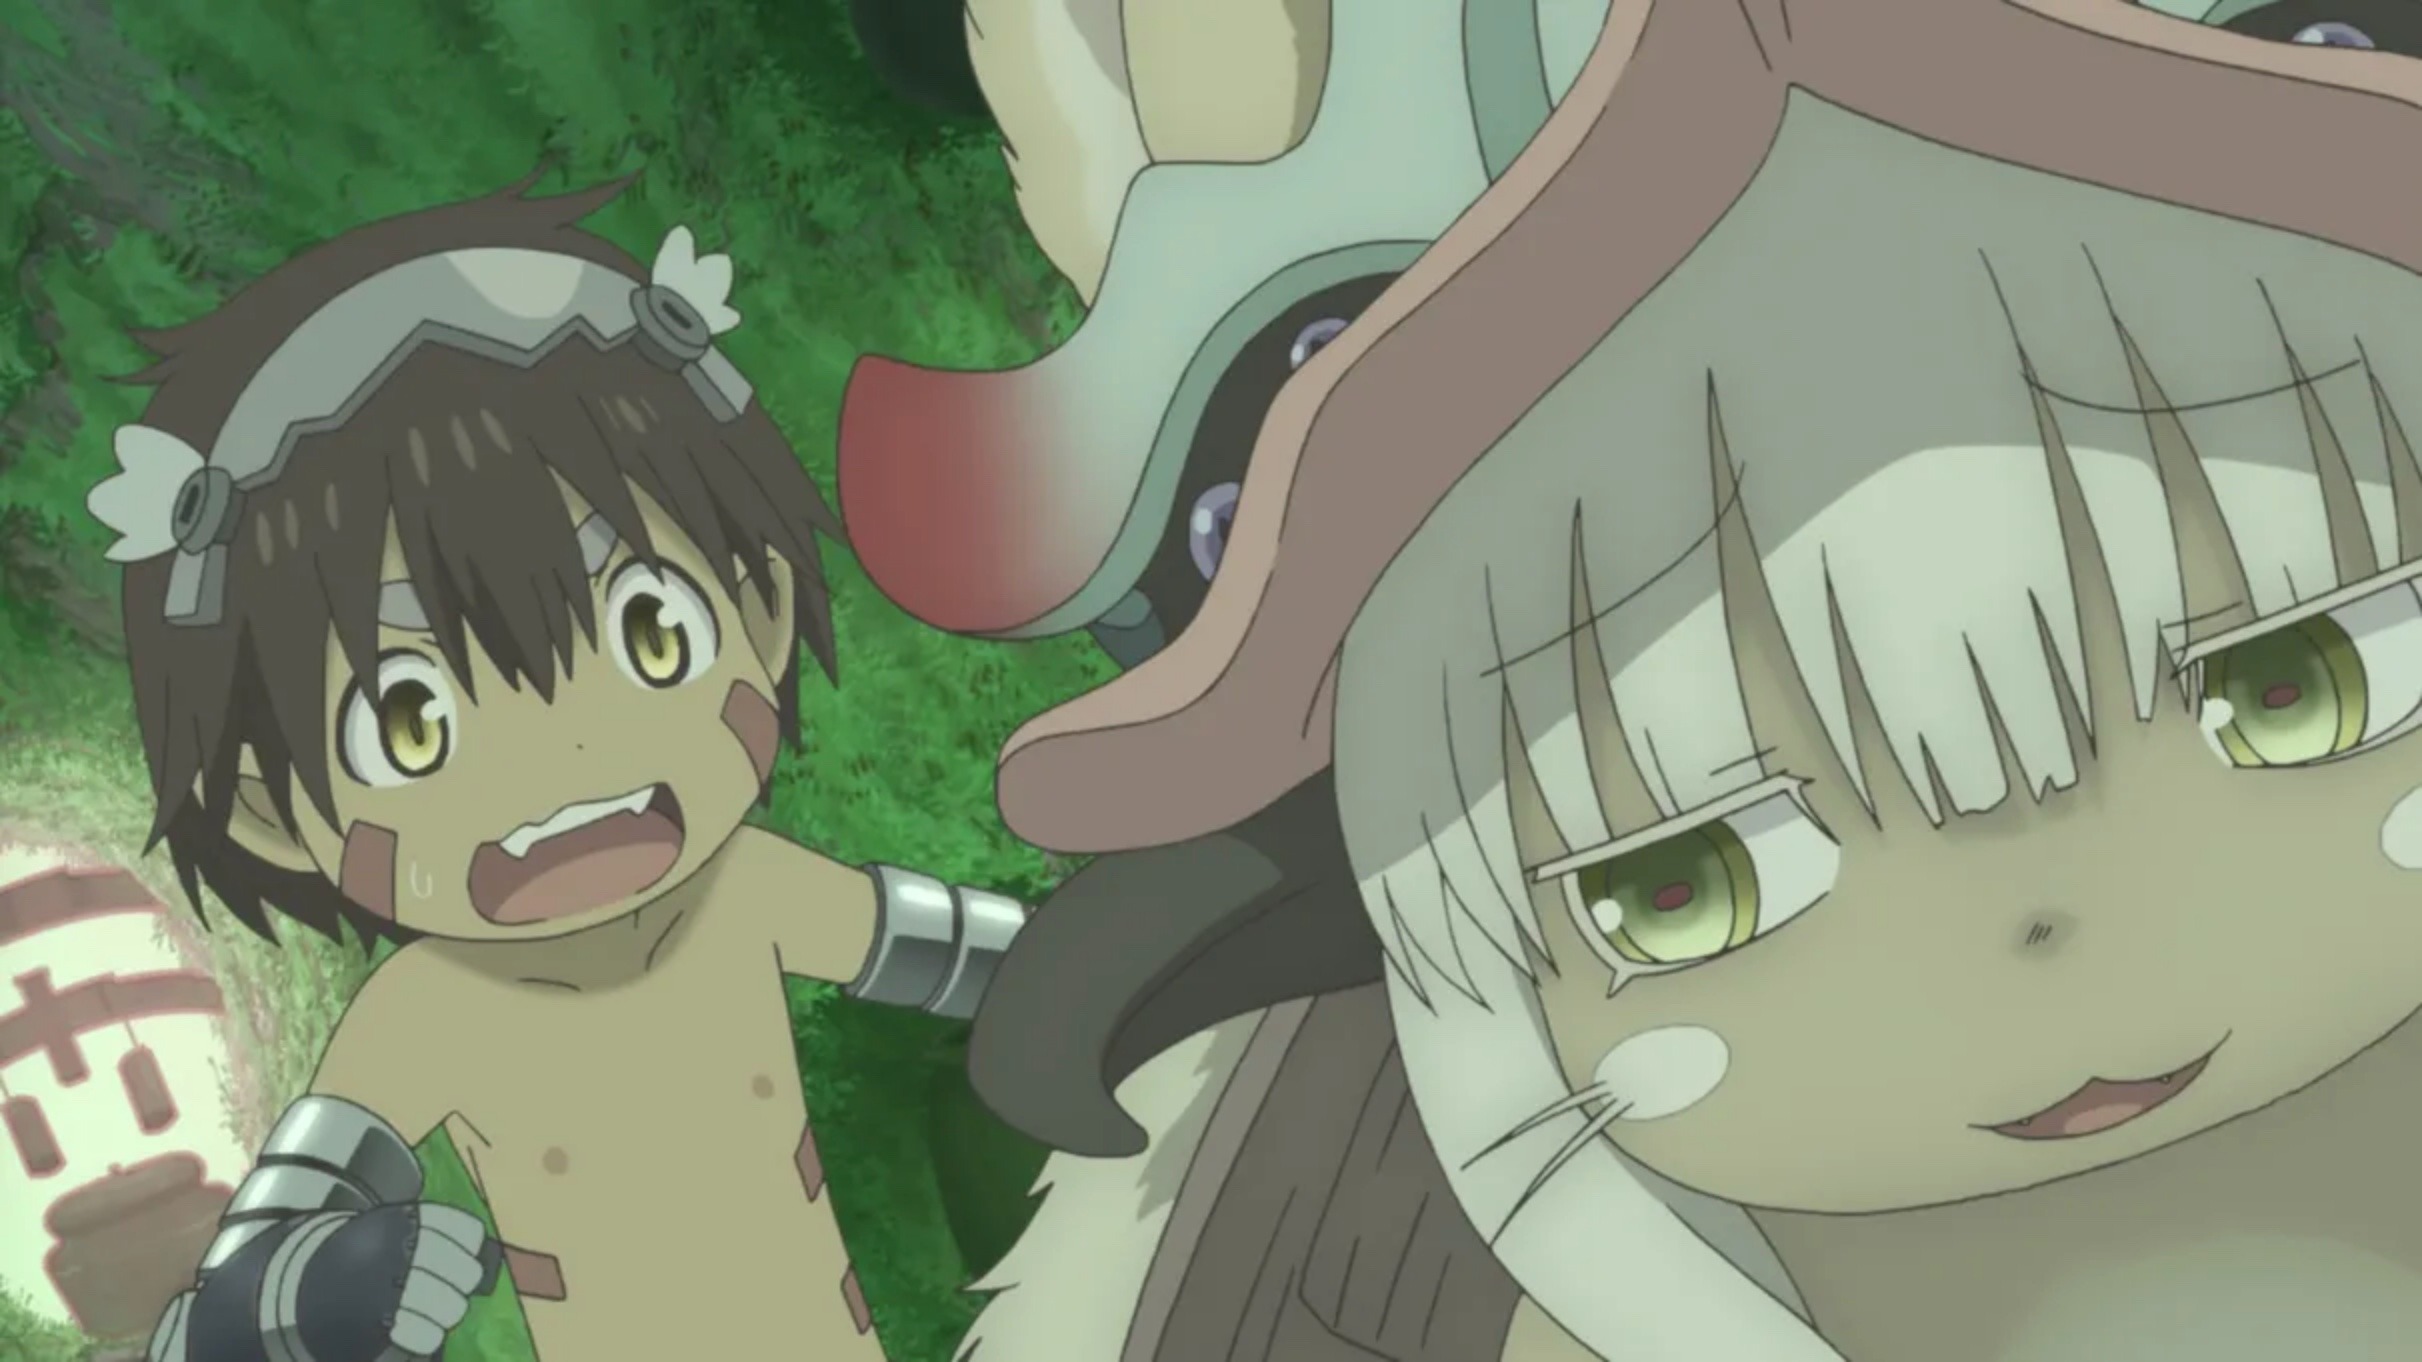 Featured image for Made in Abyss Episode 11: Regu's Chores and a Distorted Voice from the Past